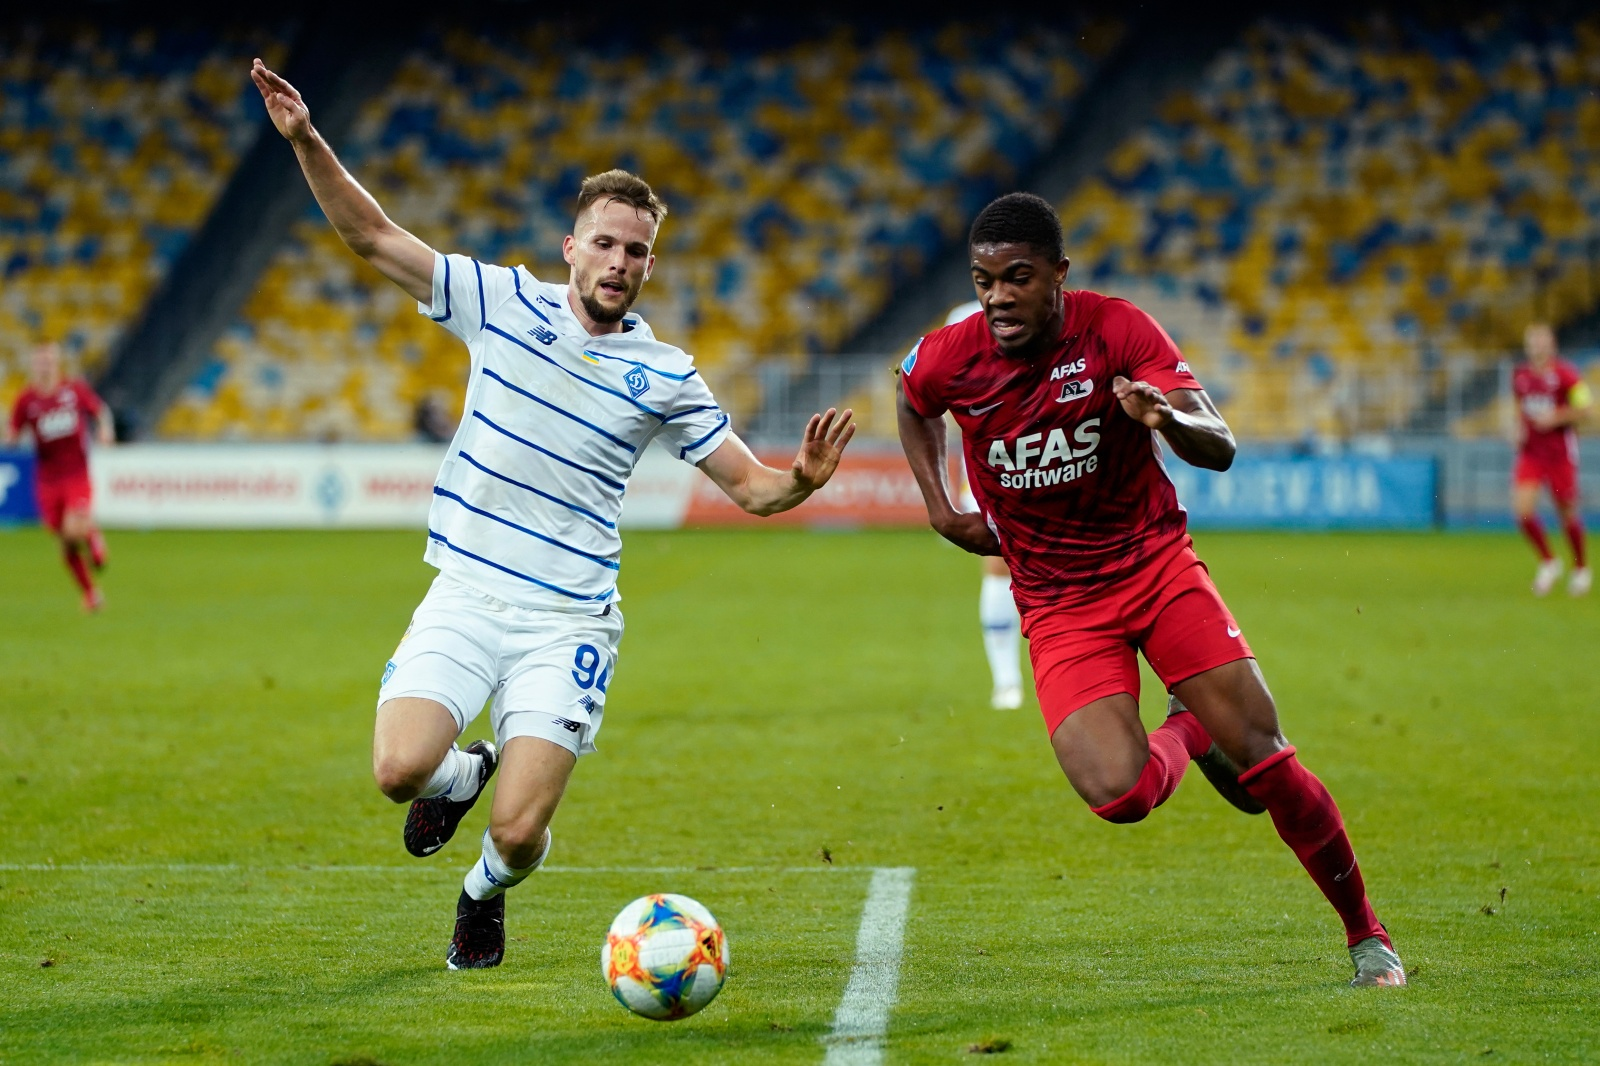 Myron Boadu in action as AZ loses 2-0 to Dynamo Kyiv in UCL third qualifying round